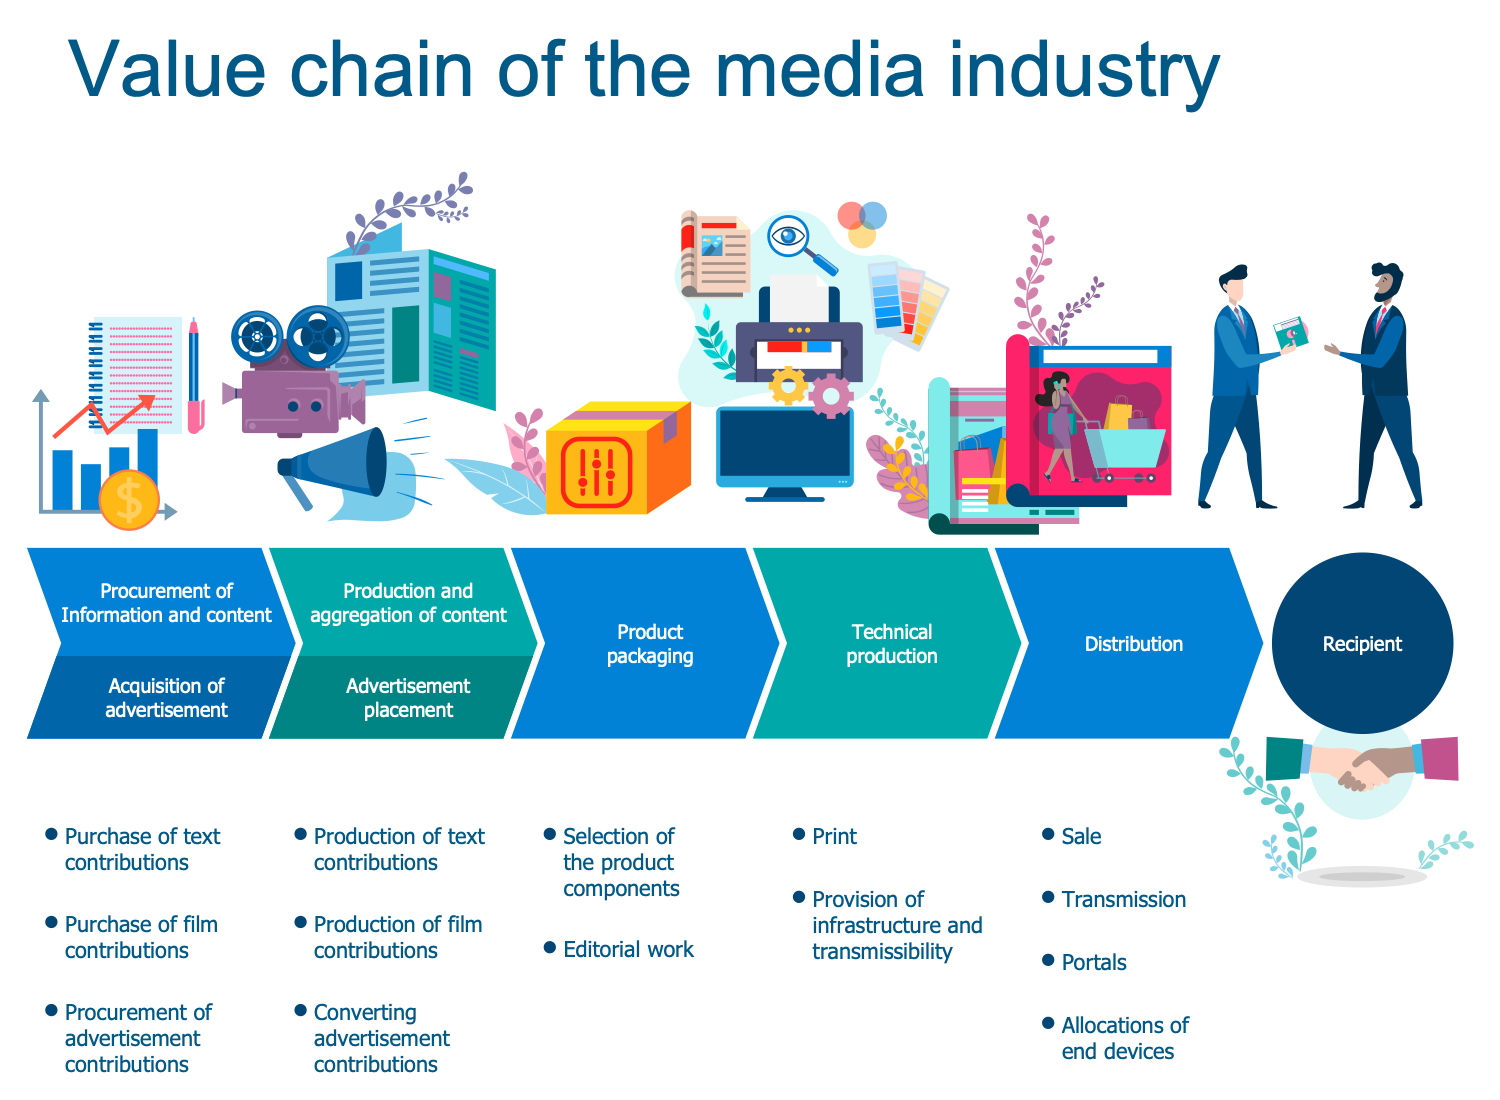 Value Chain of the Media Industry